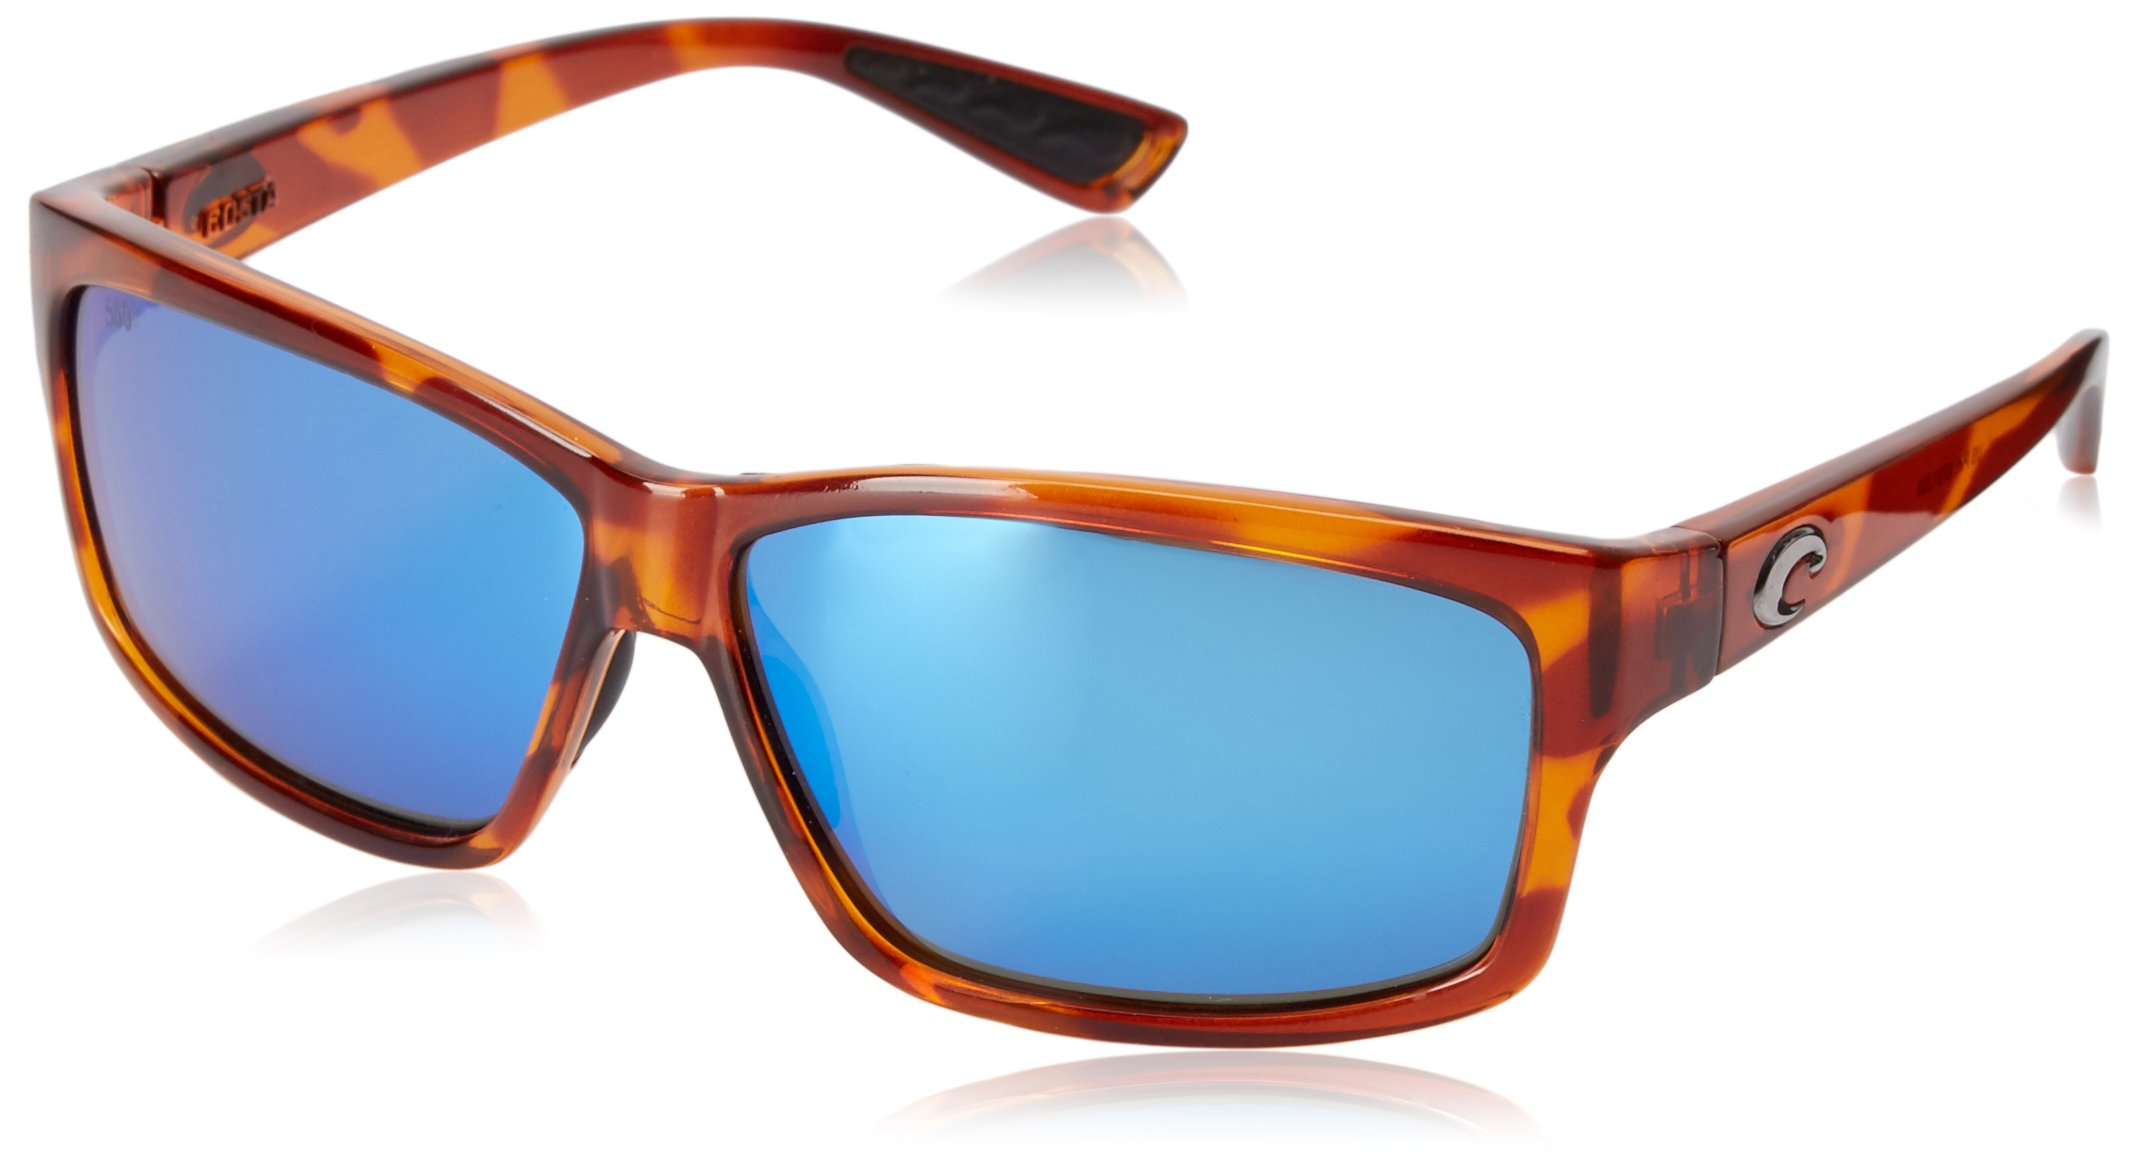 Costa del Mar Cut Polarized Rectangular Sunglasses, Honey Tortoise/Blue Mirror 580 Glass by Costa Del Mar